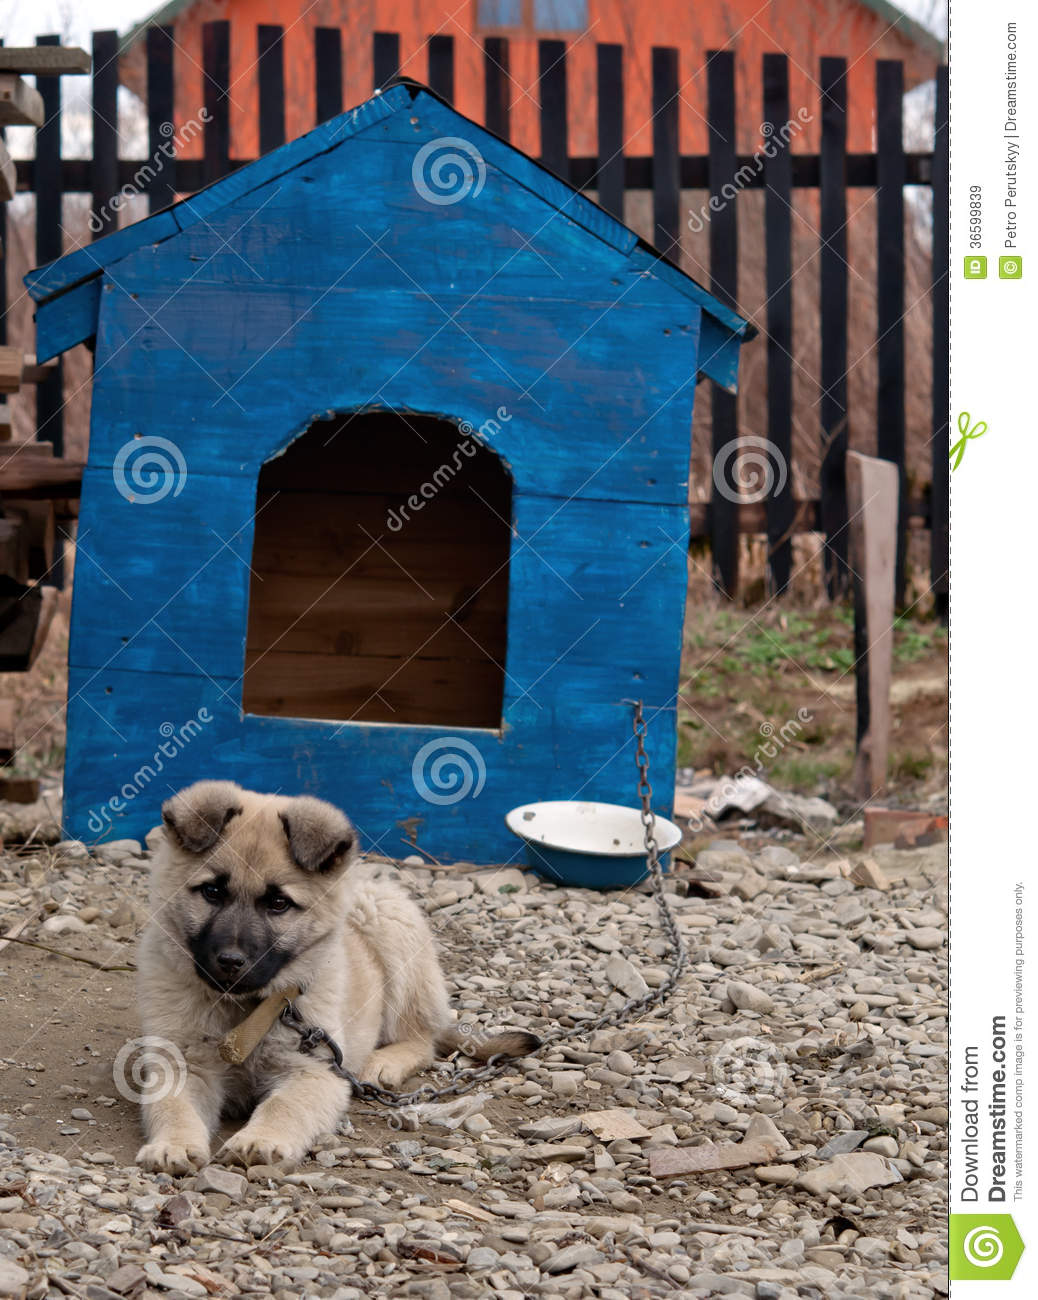 Royalty Free Stock Images Dog House